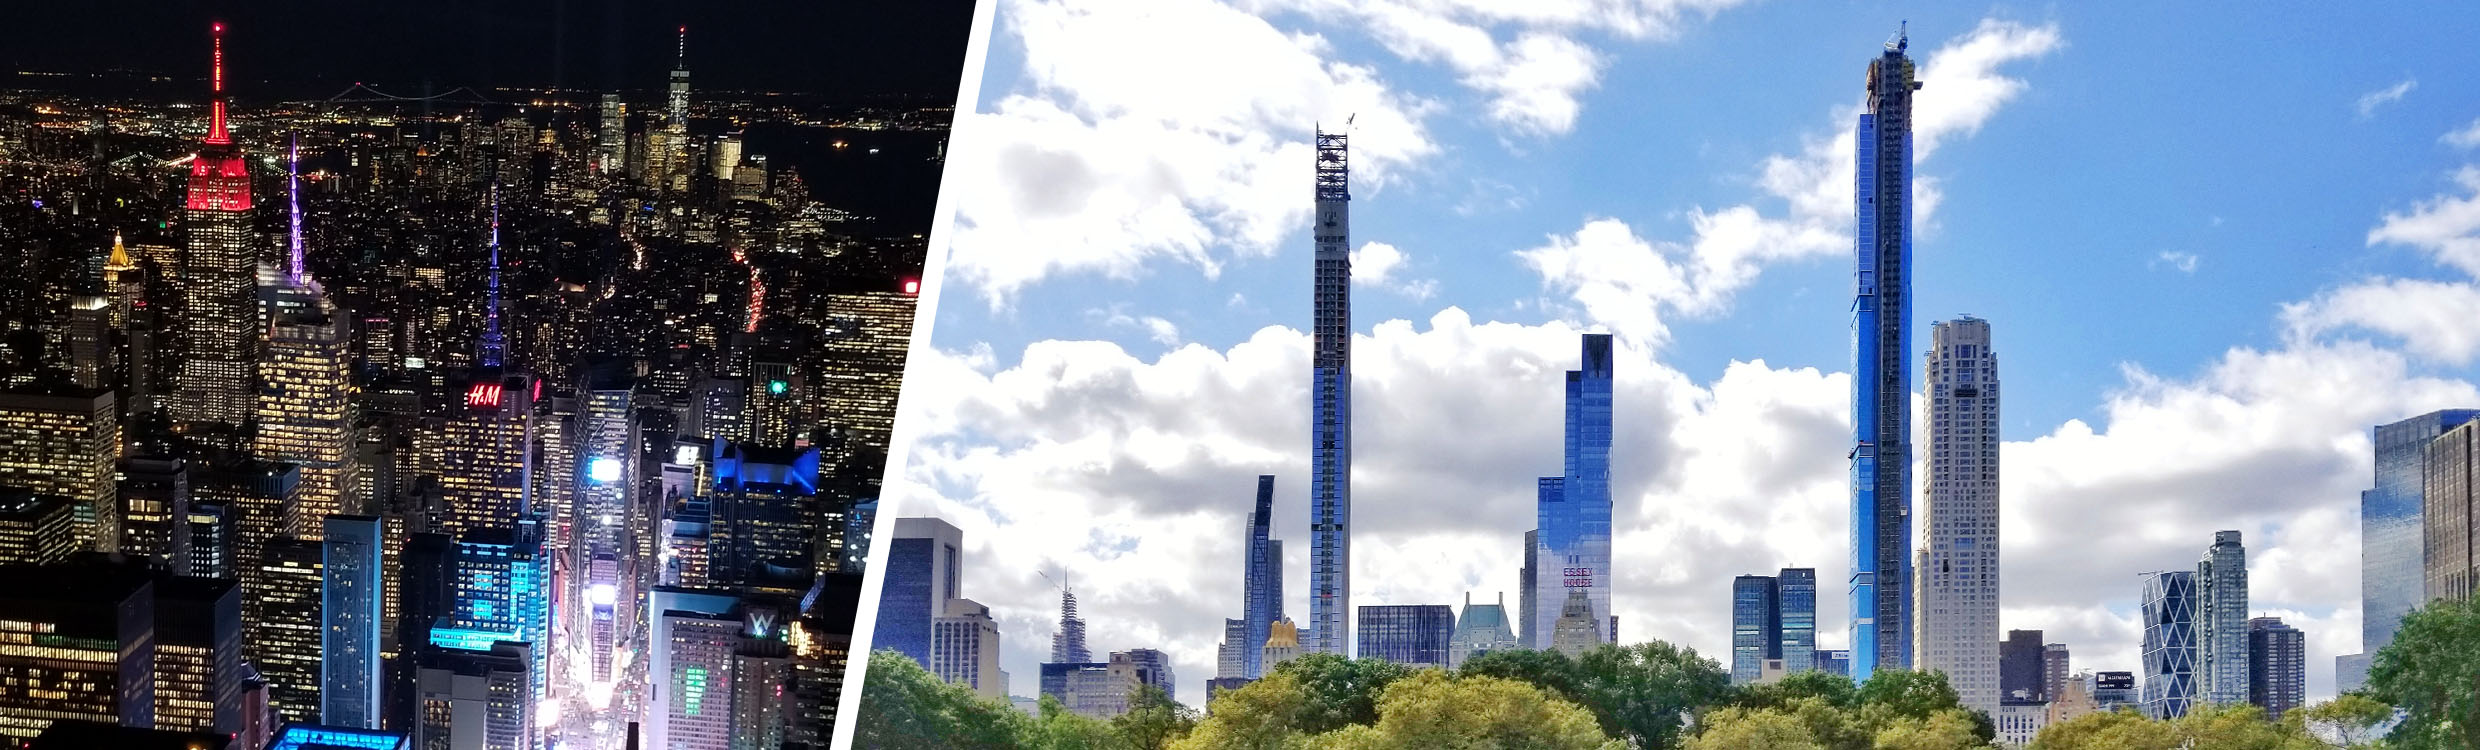 Central Park Tower Monitoring Key Visual 2480 x 750px